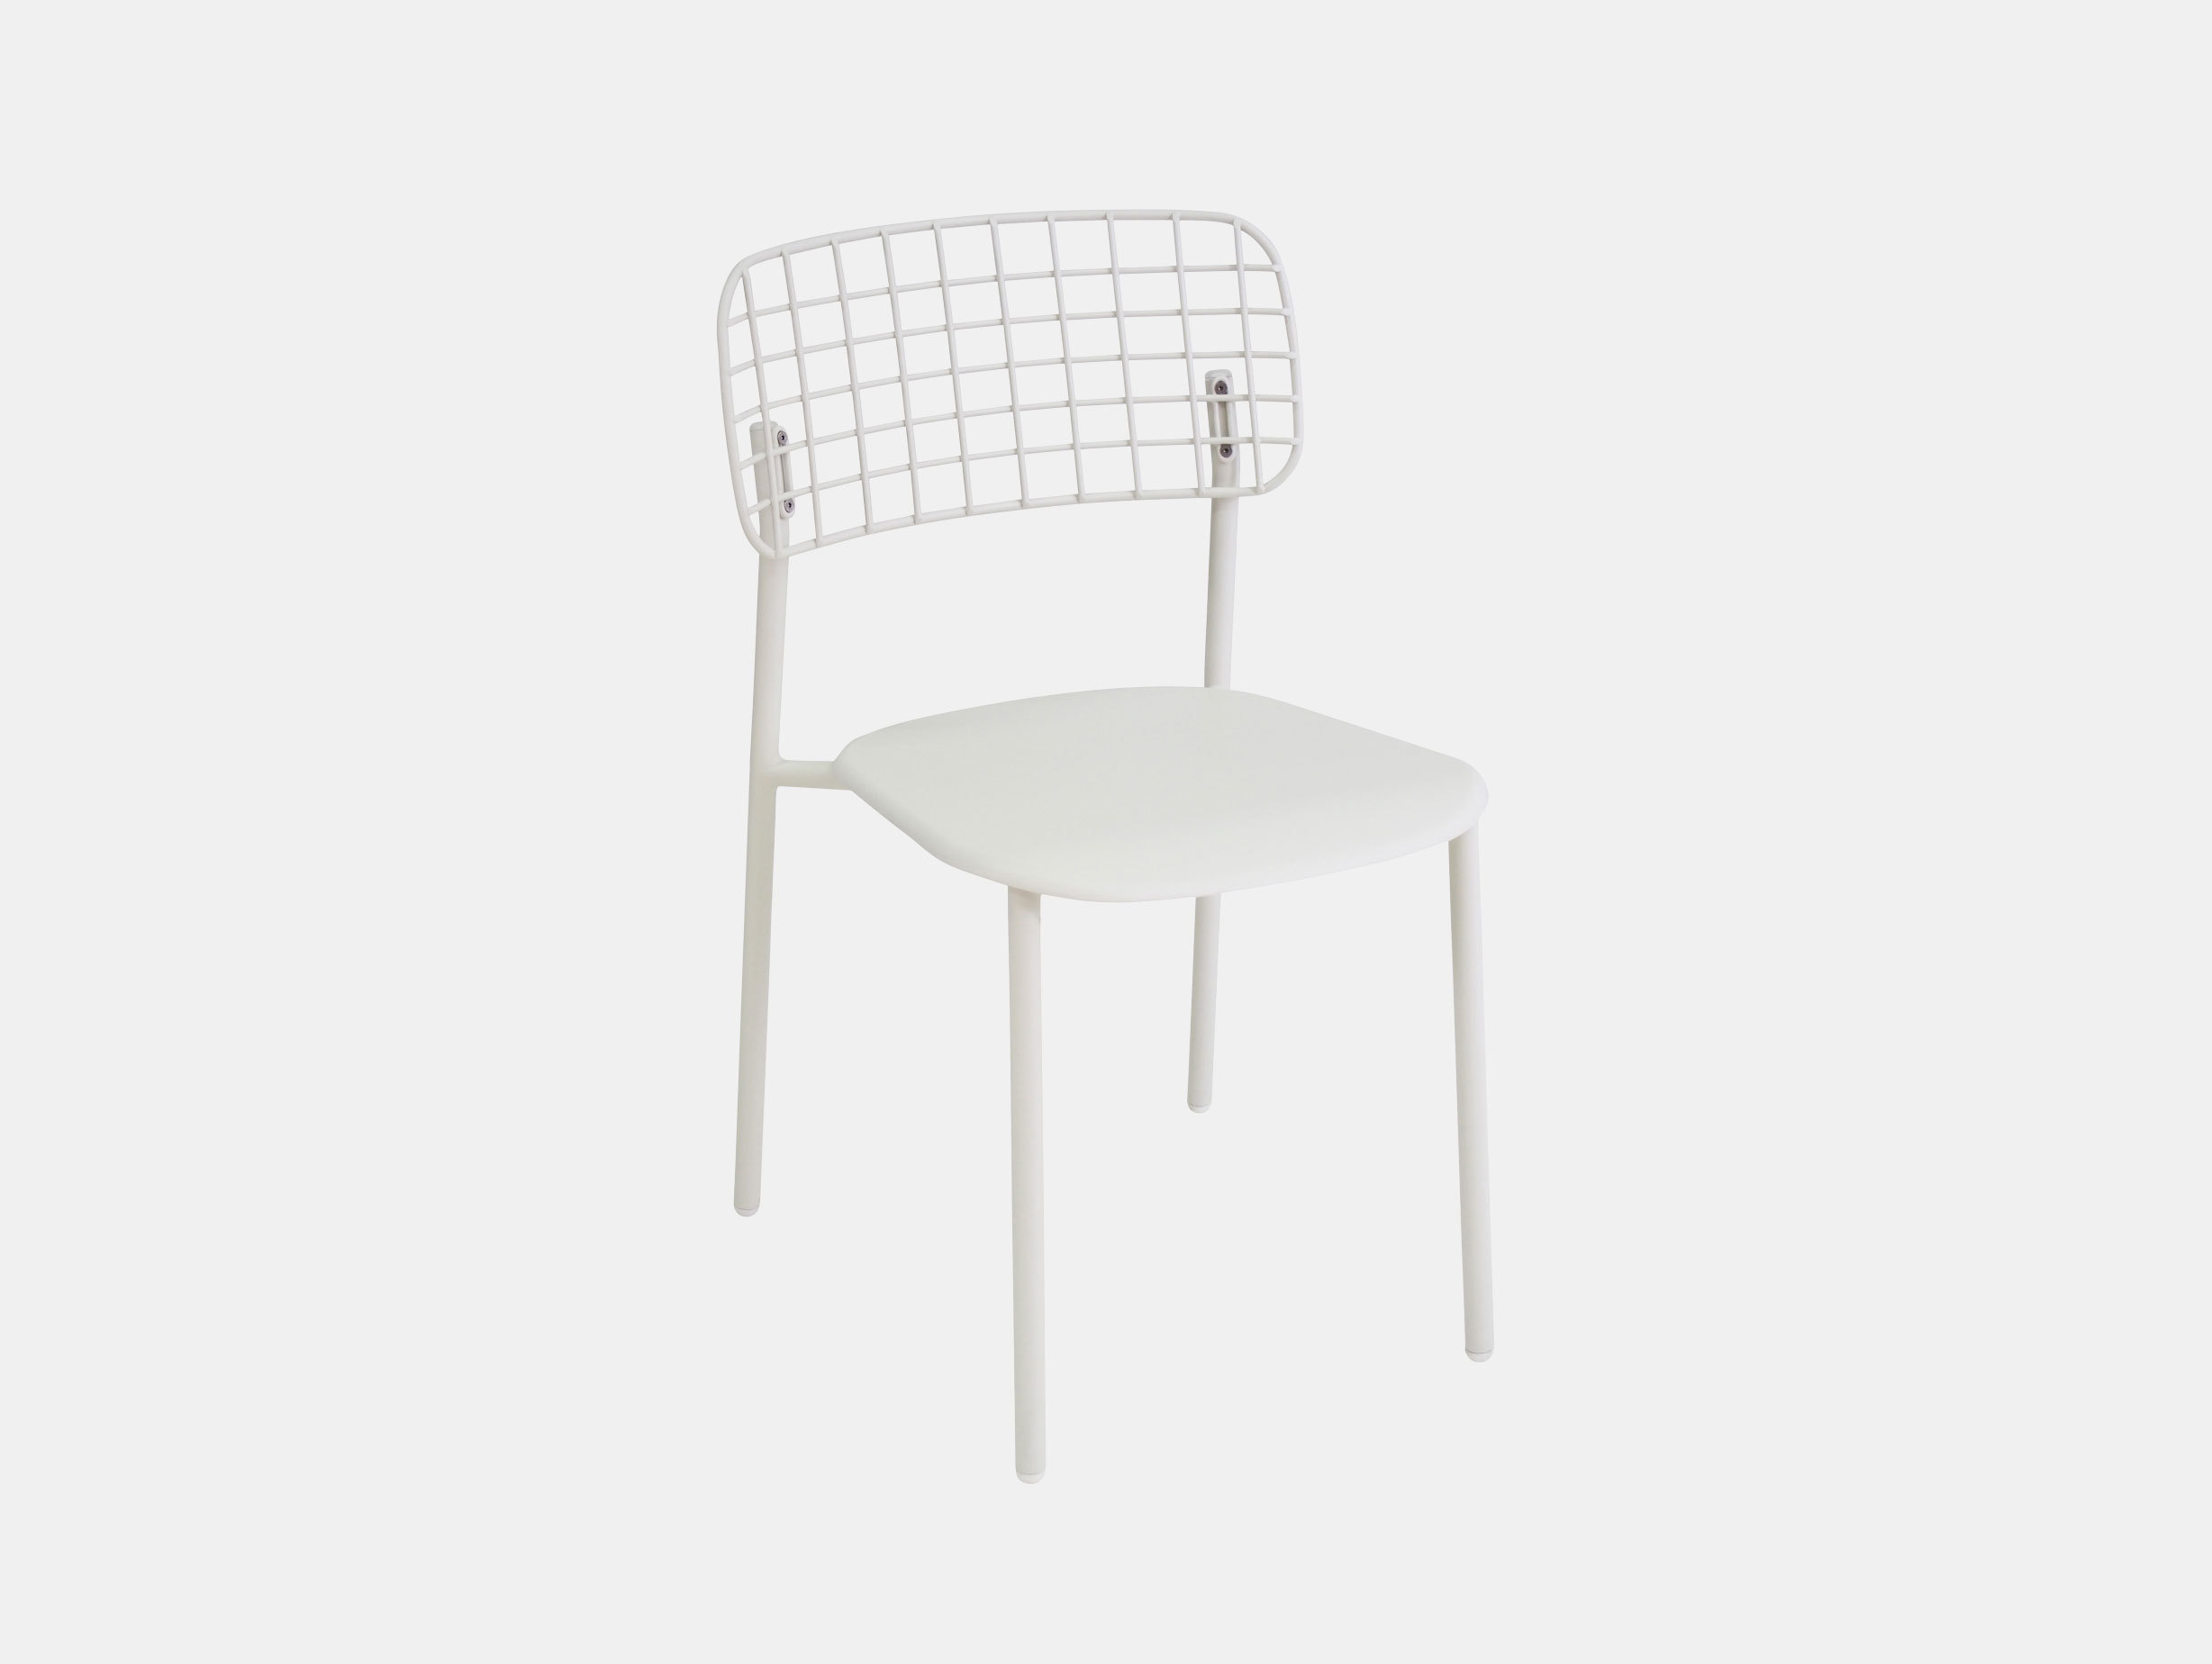 Lyze Chair image 2